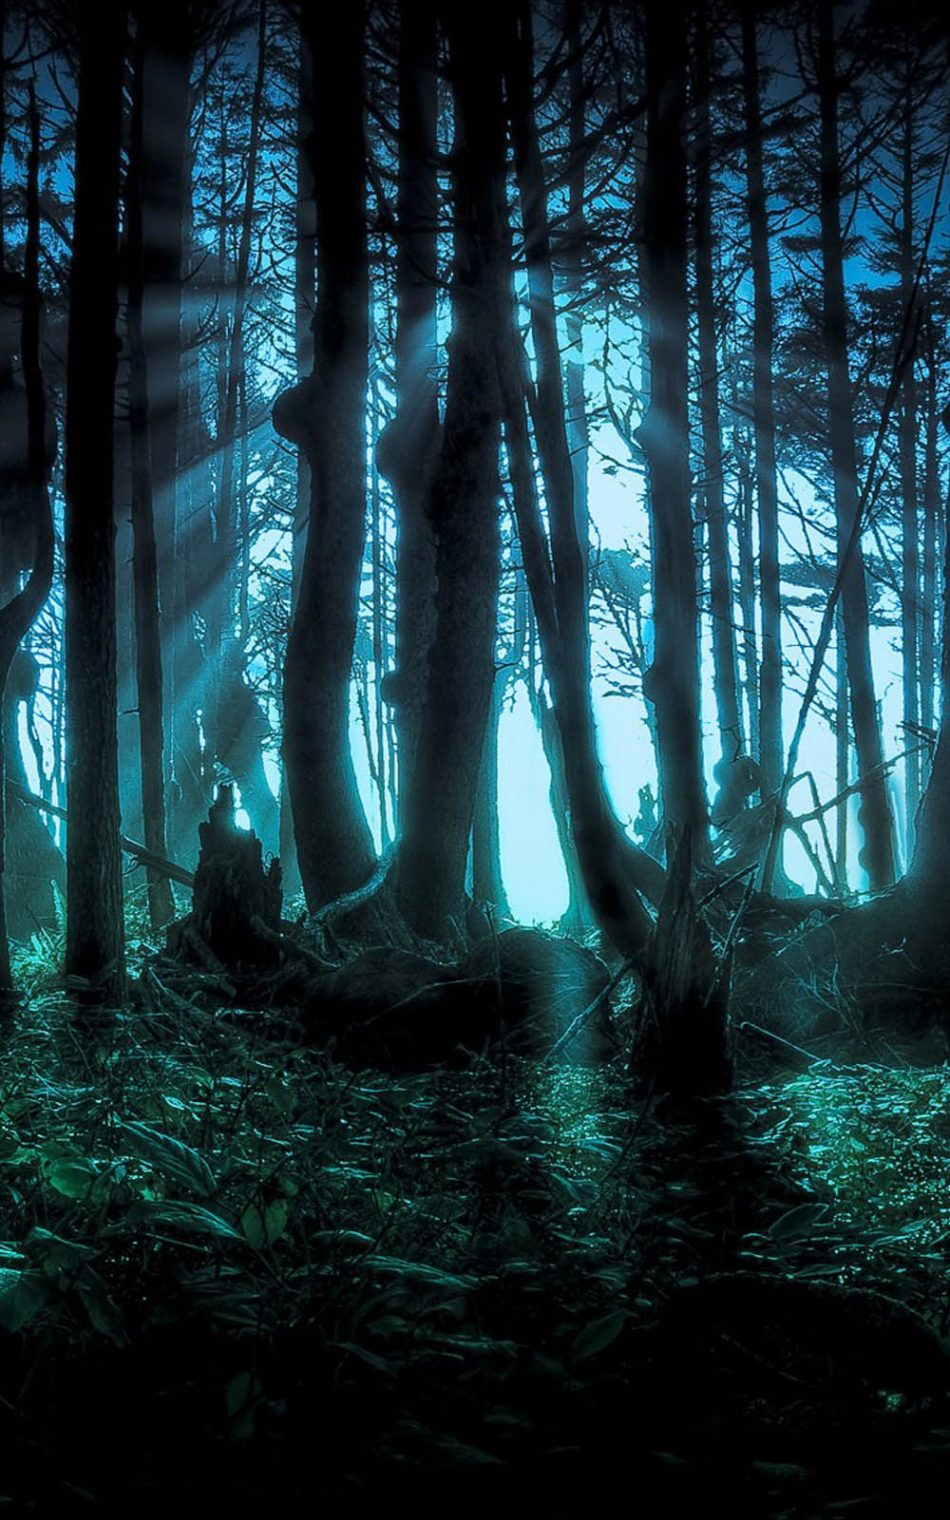 Halloween Scary Forest Free 4k Ultra Hd Mobile Wallpaper